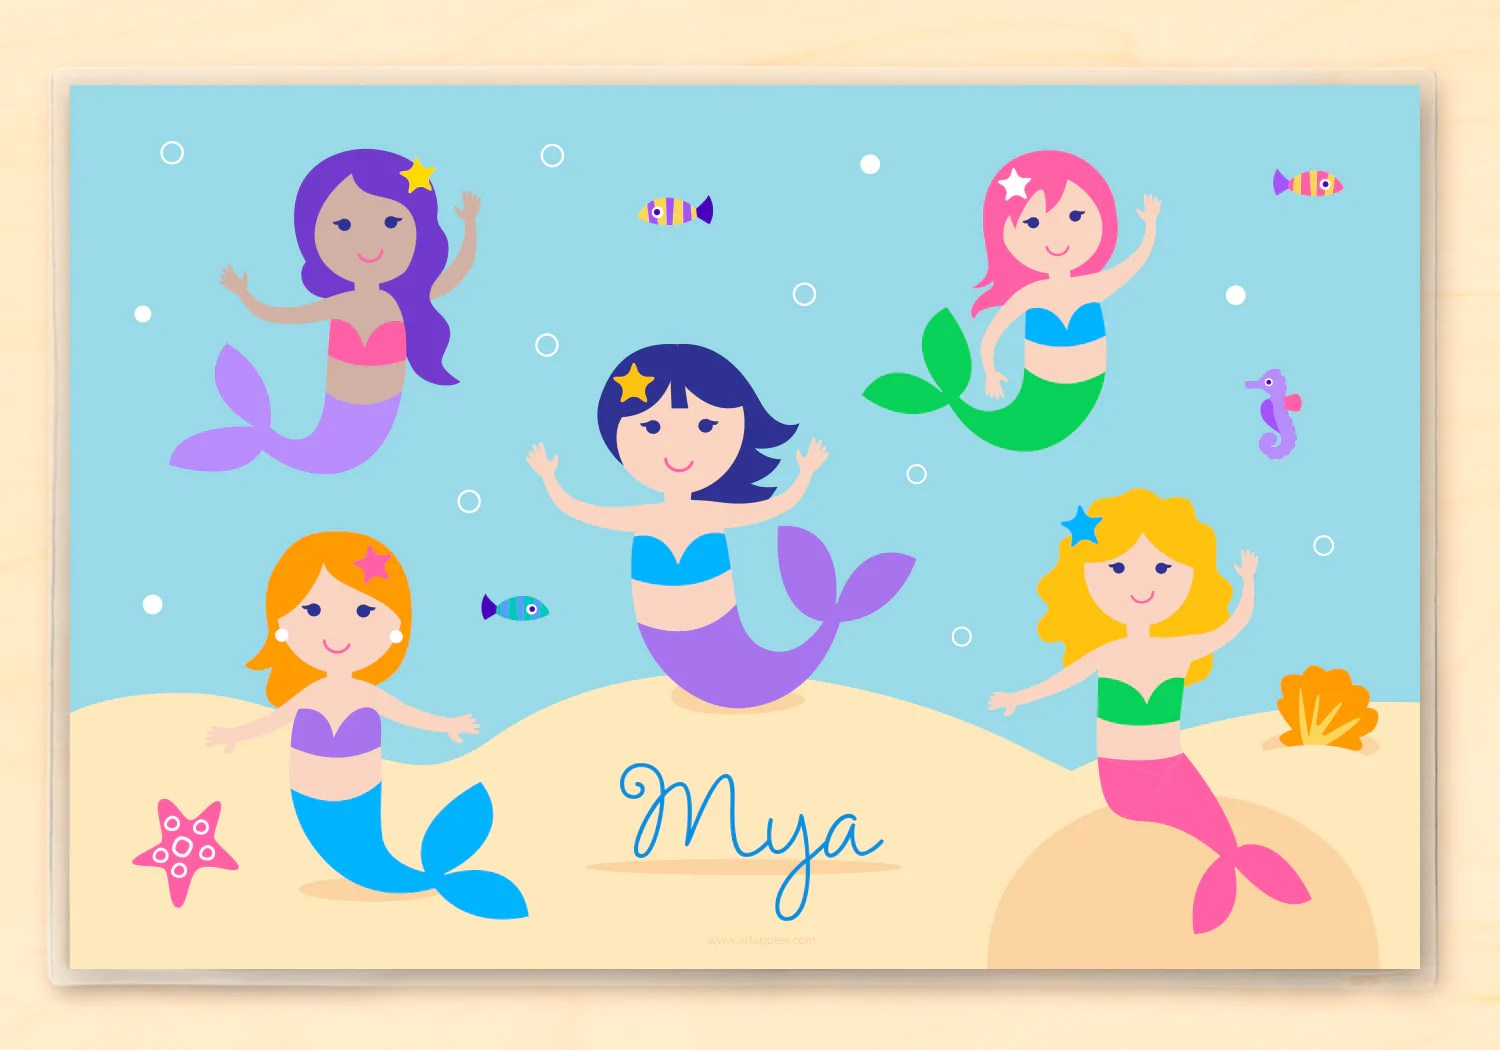 mermaids personalized kids placemat